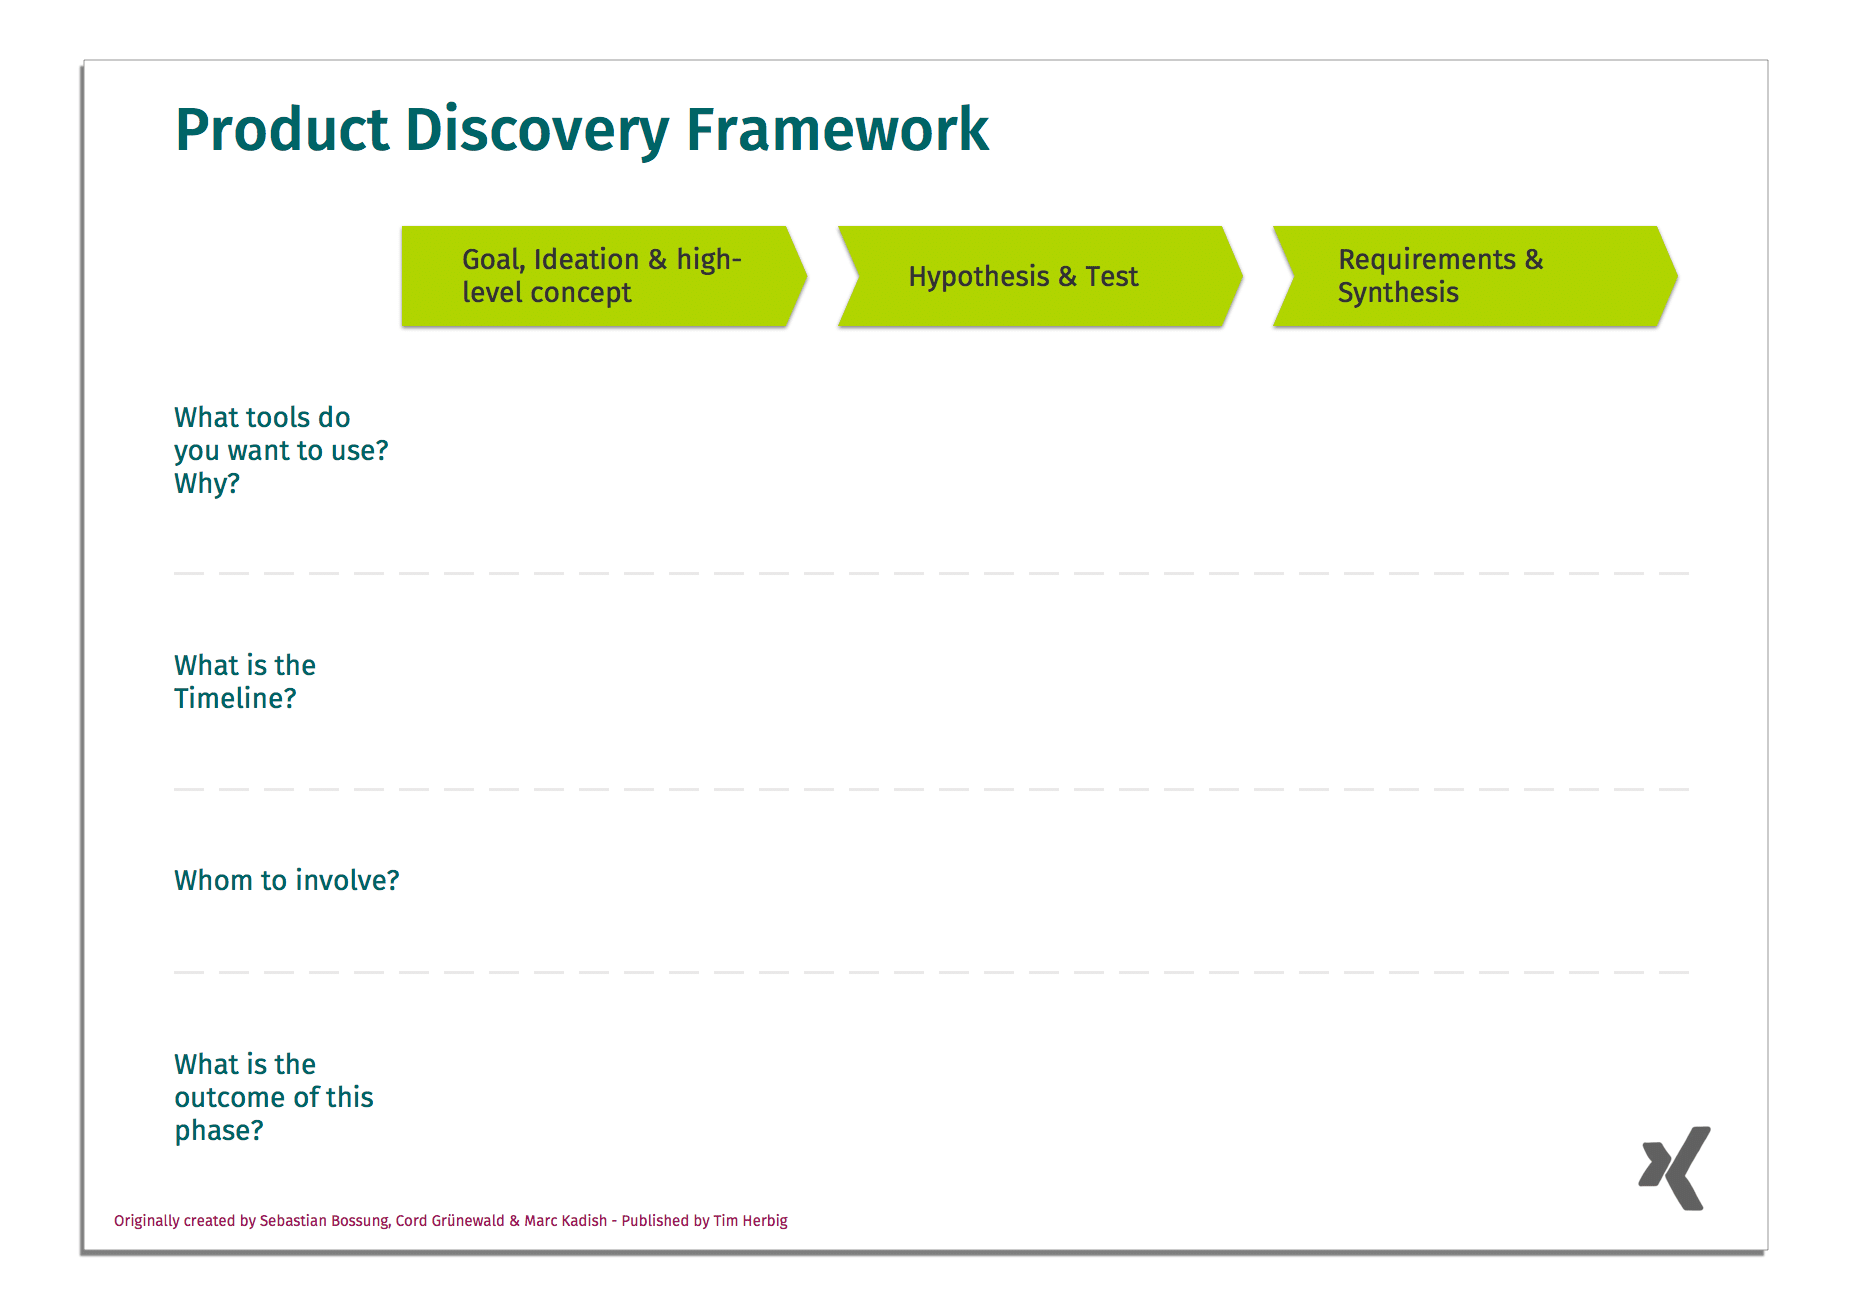 Product Discovery Framework